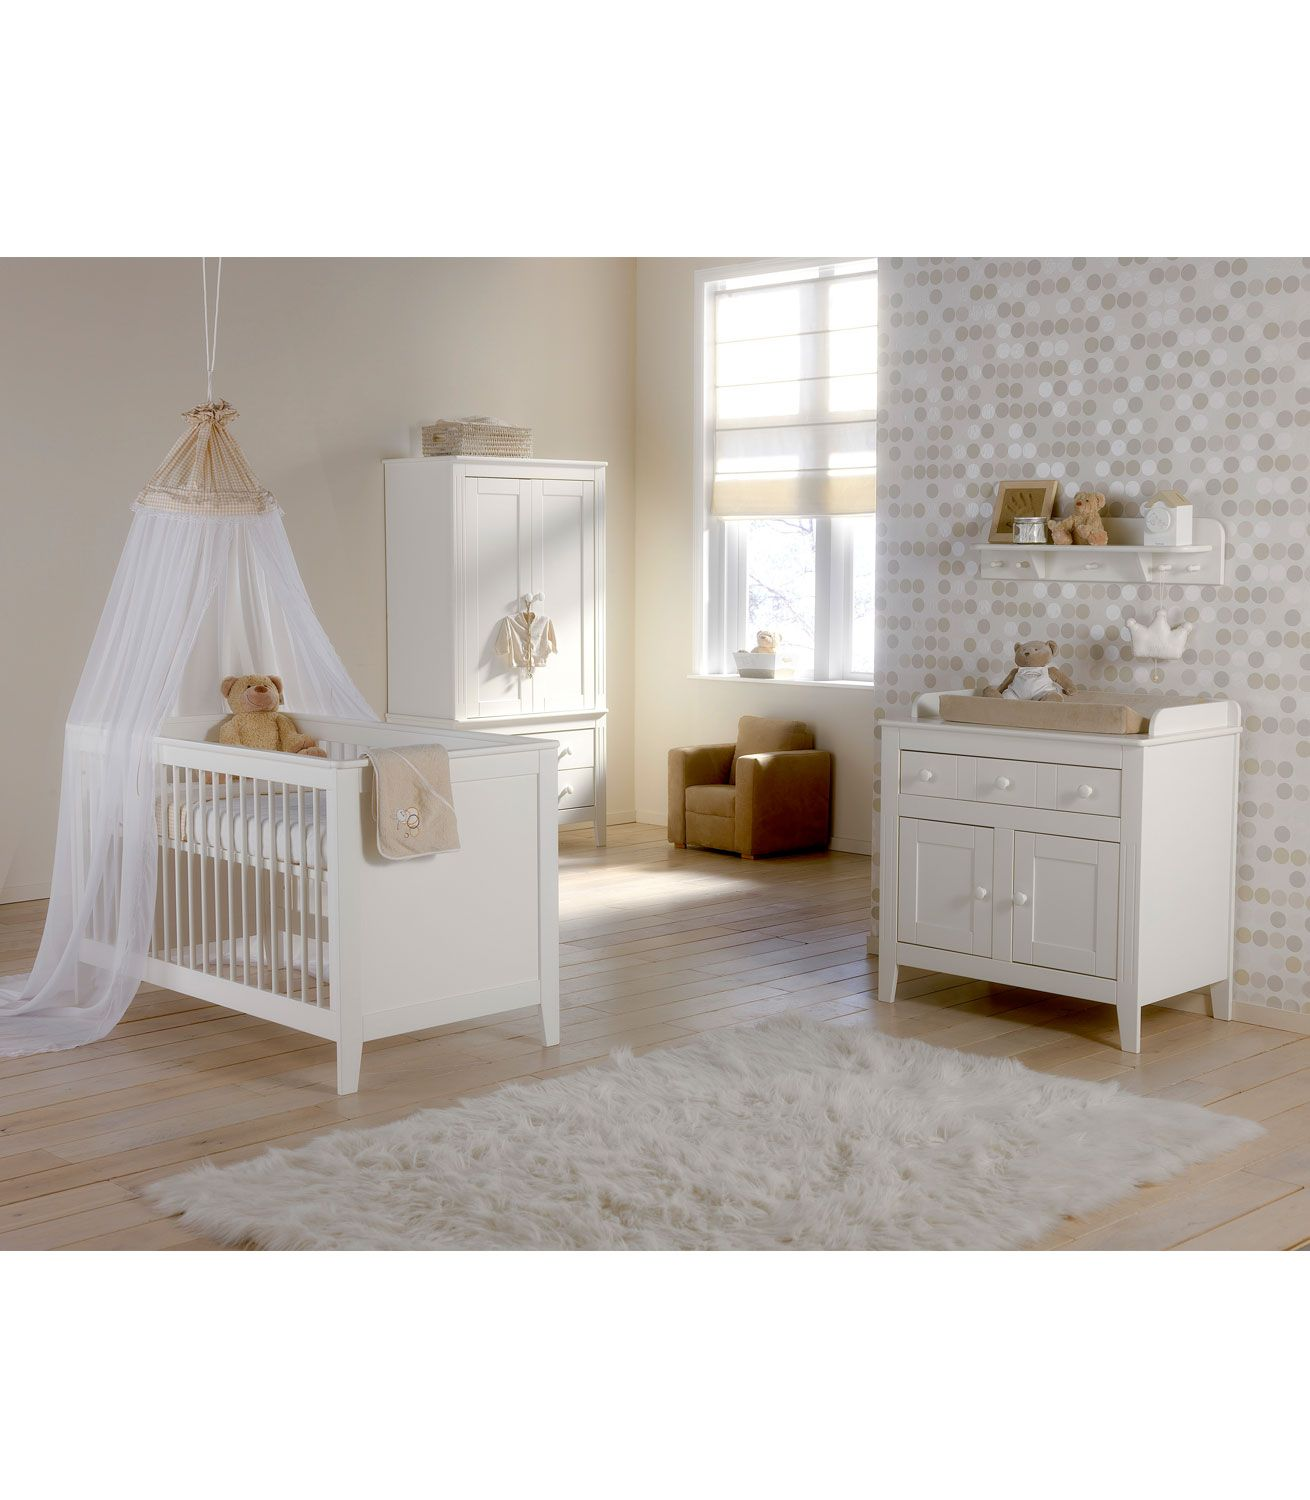 Buy Your Europe Baby Montana Roomset Cotbed Chest